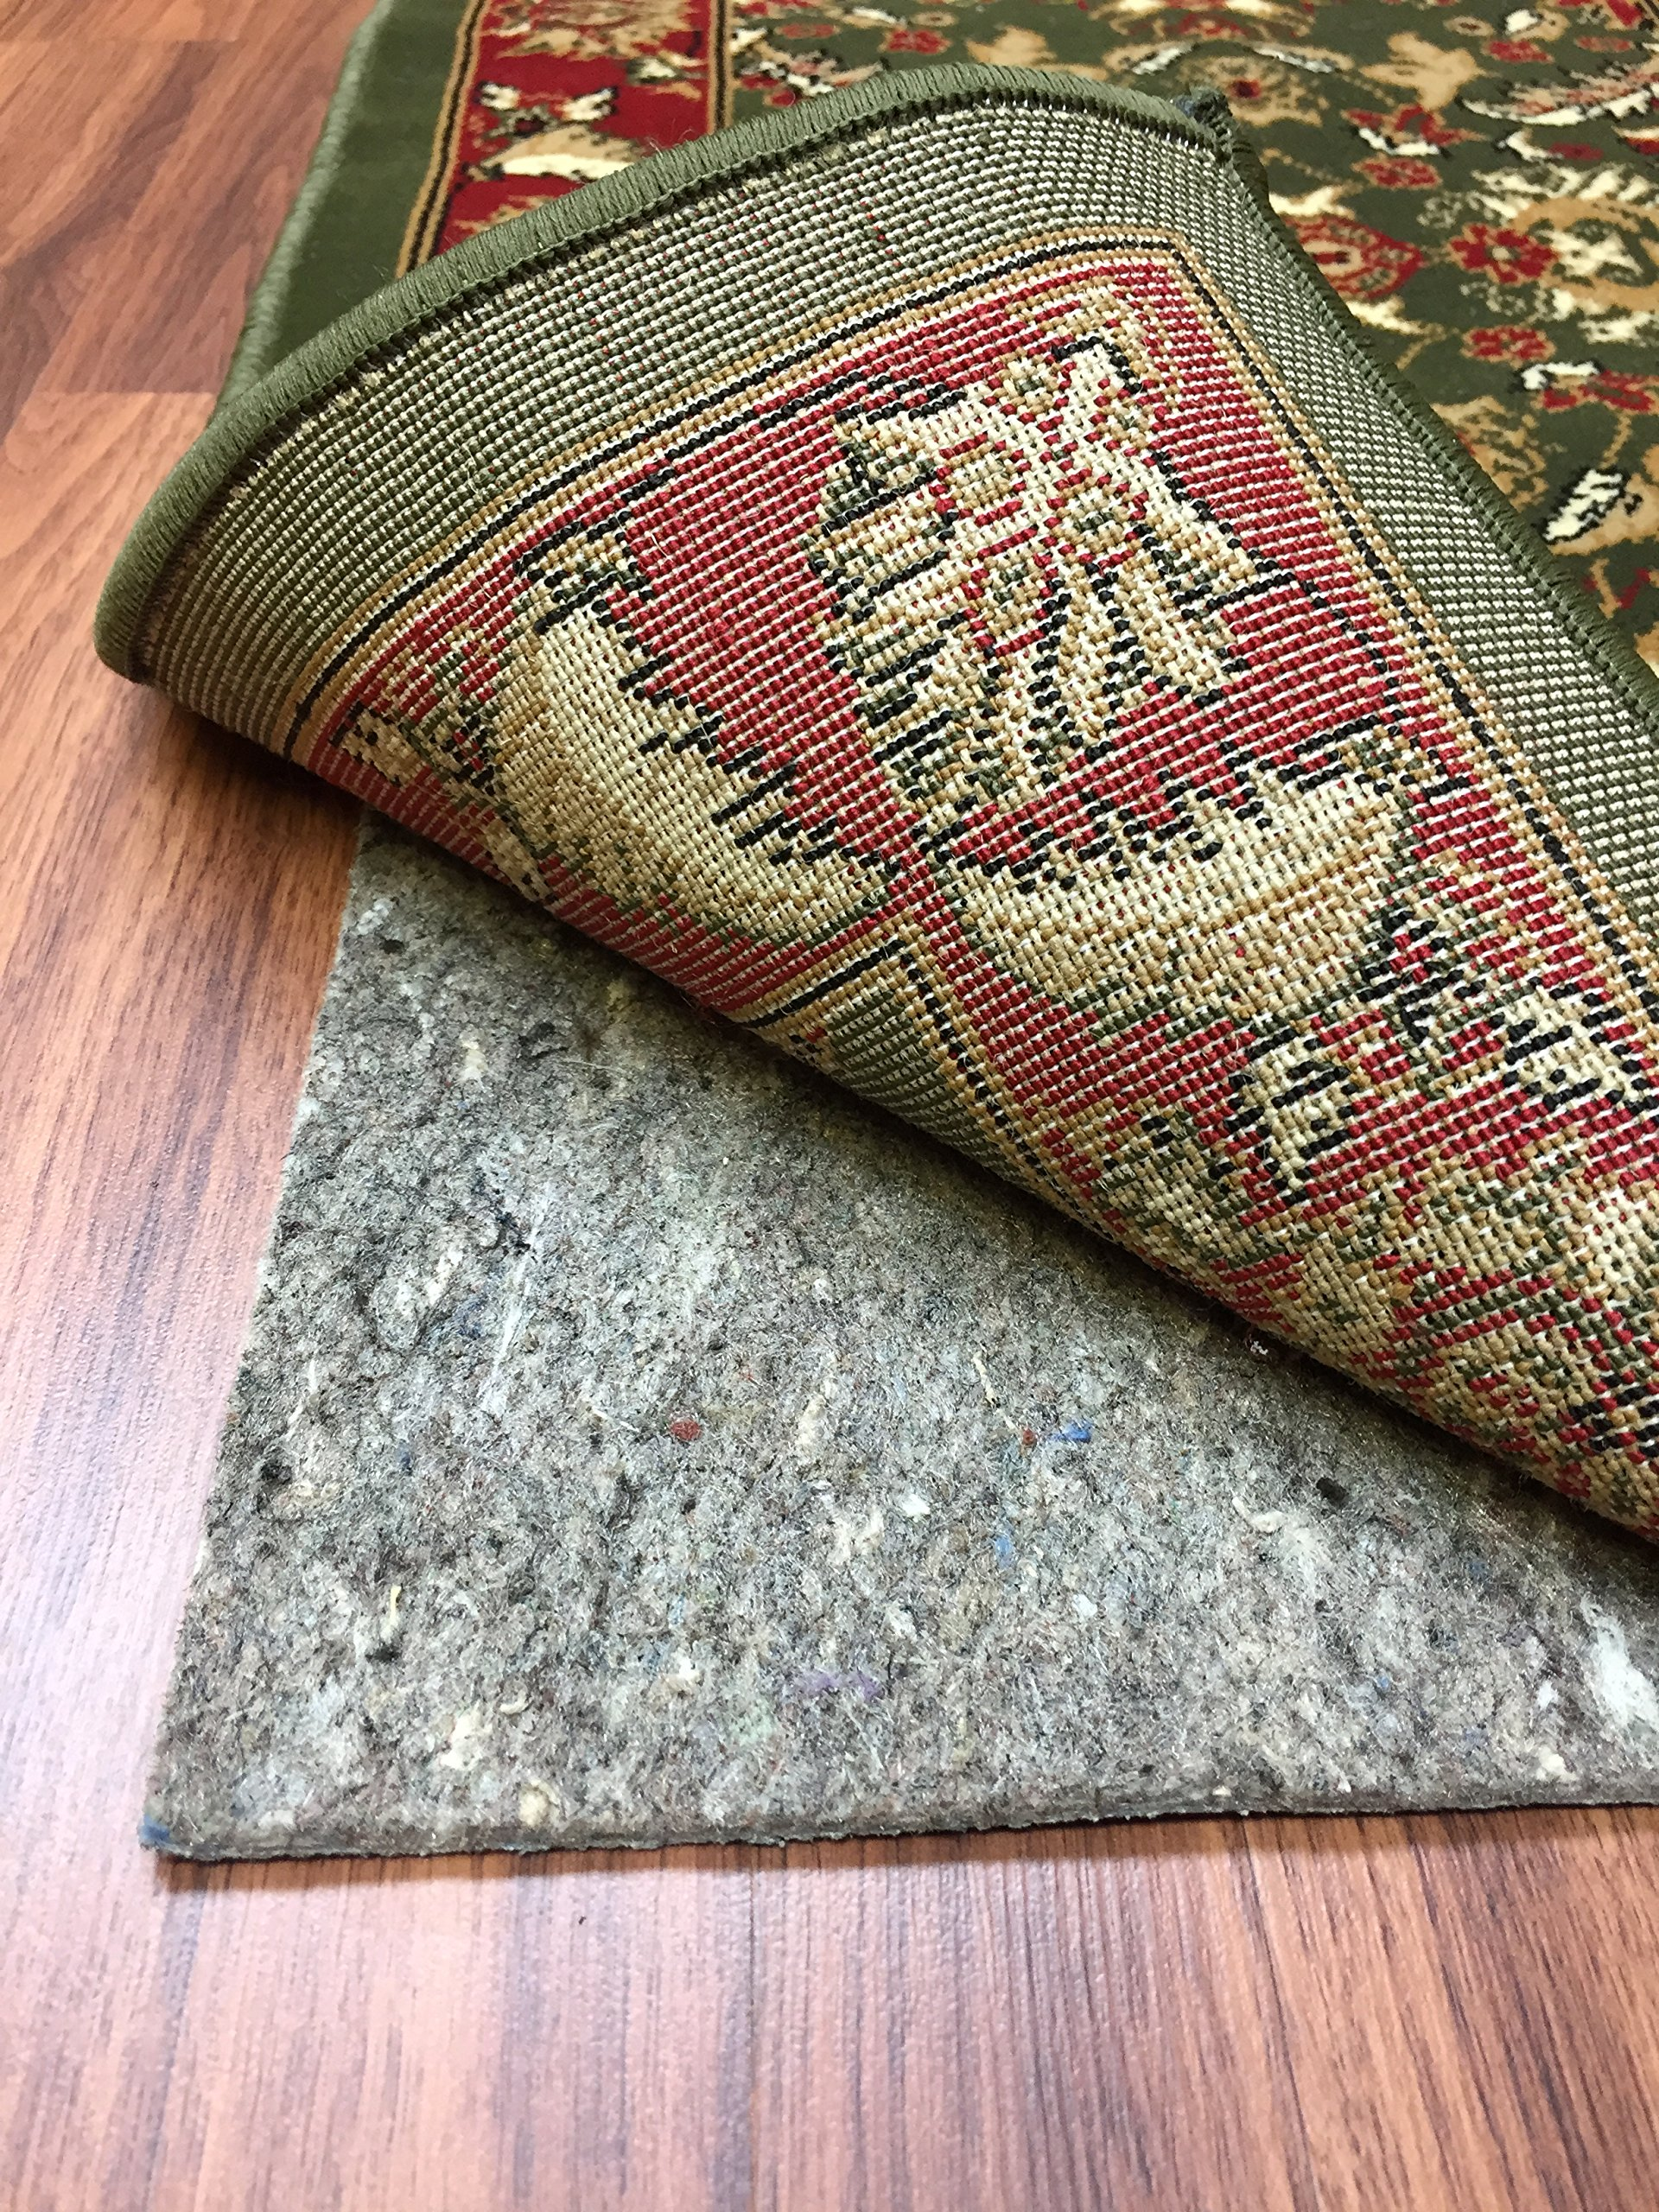 Area Rugs Pad Fiber Non Slip Padding Perfect for Hardwood Floors Thick Felt Cushion for Rugs Nonskid Kitchen (4'x6')